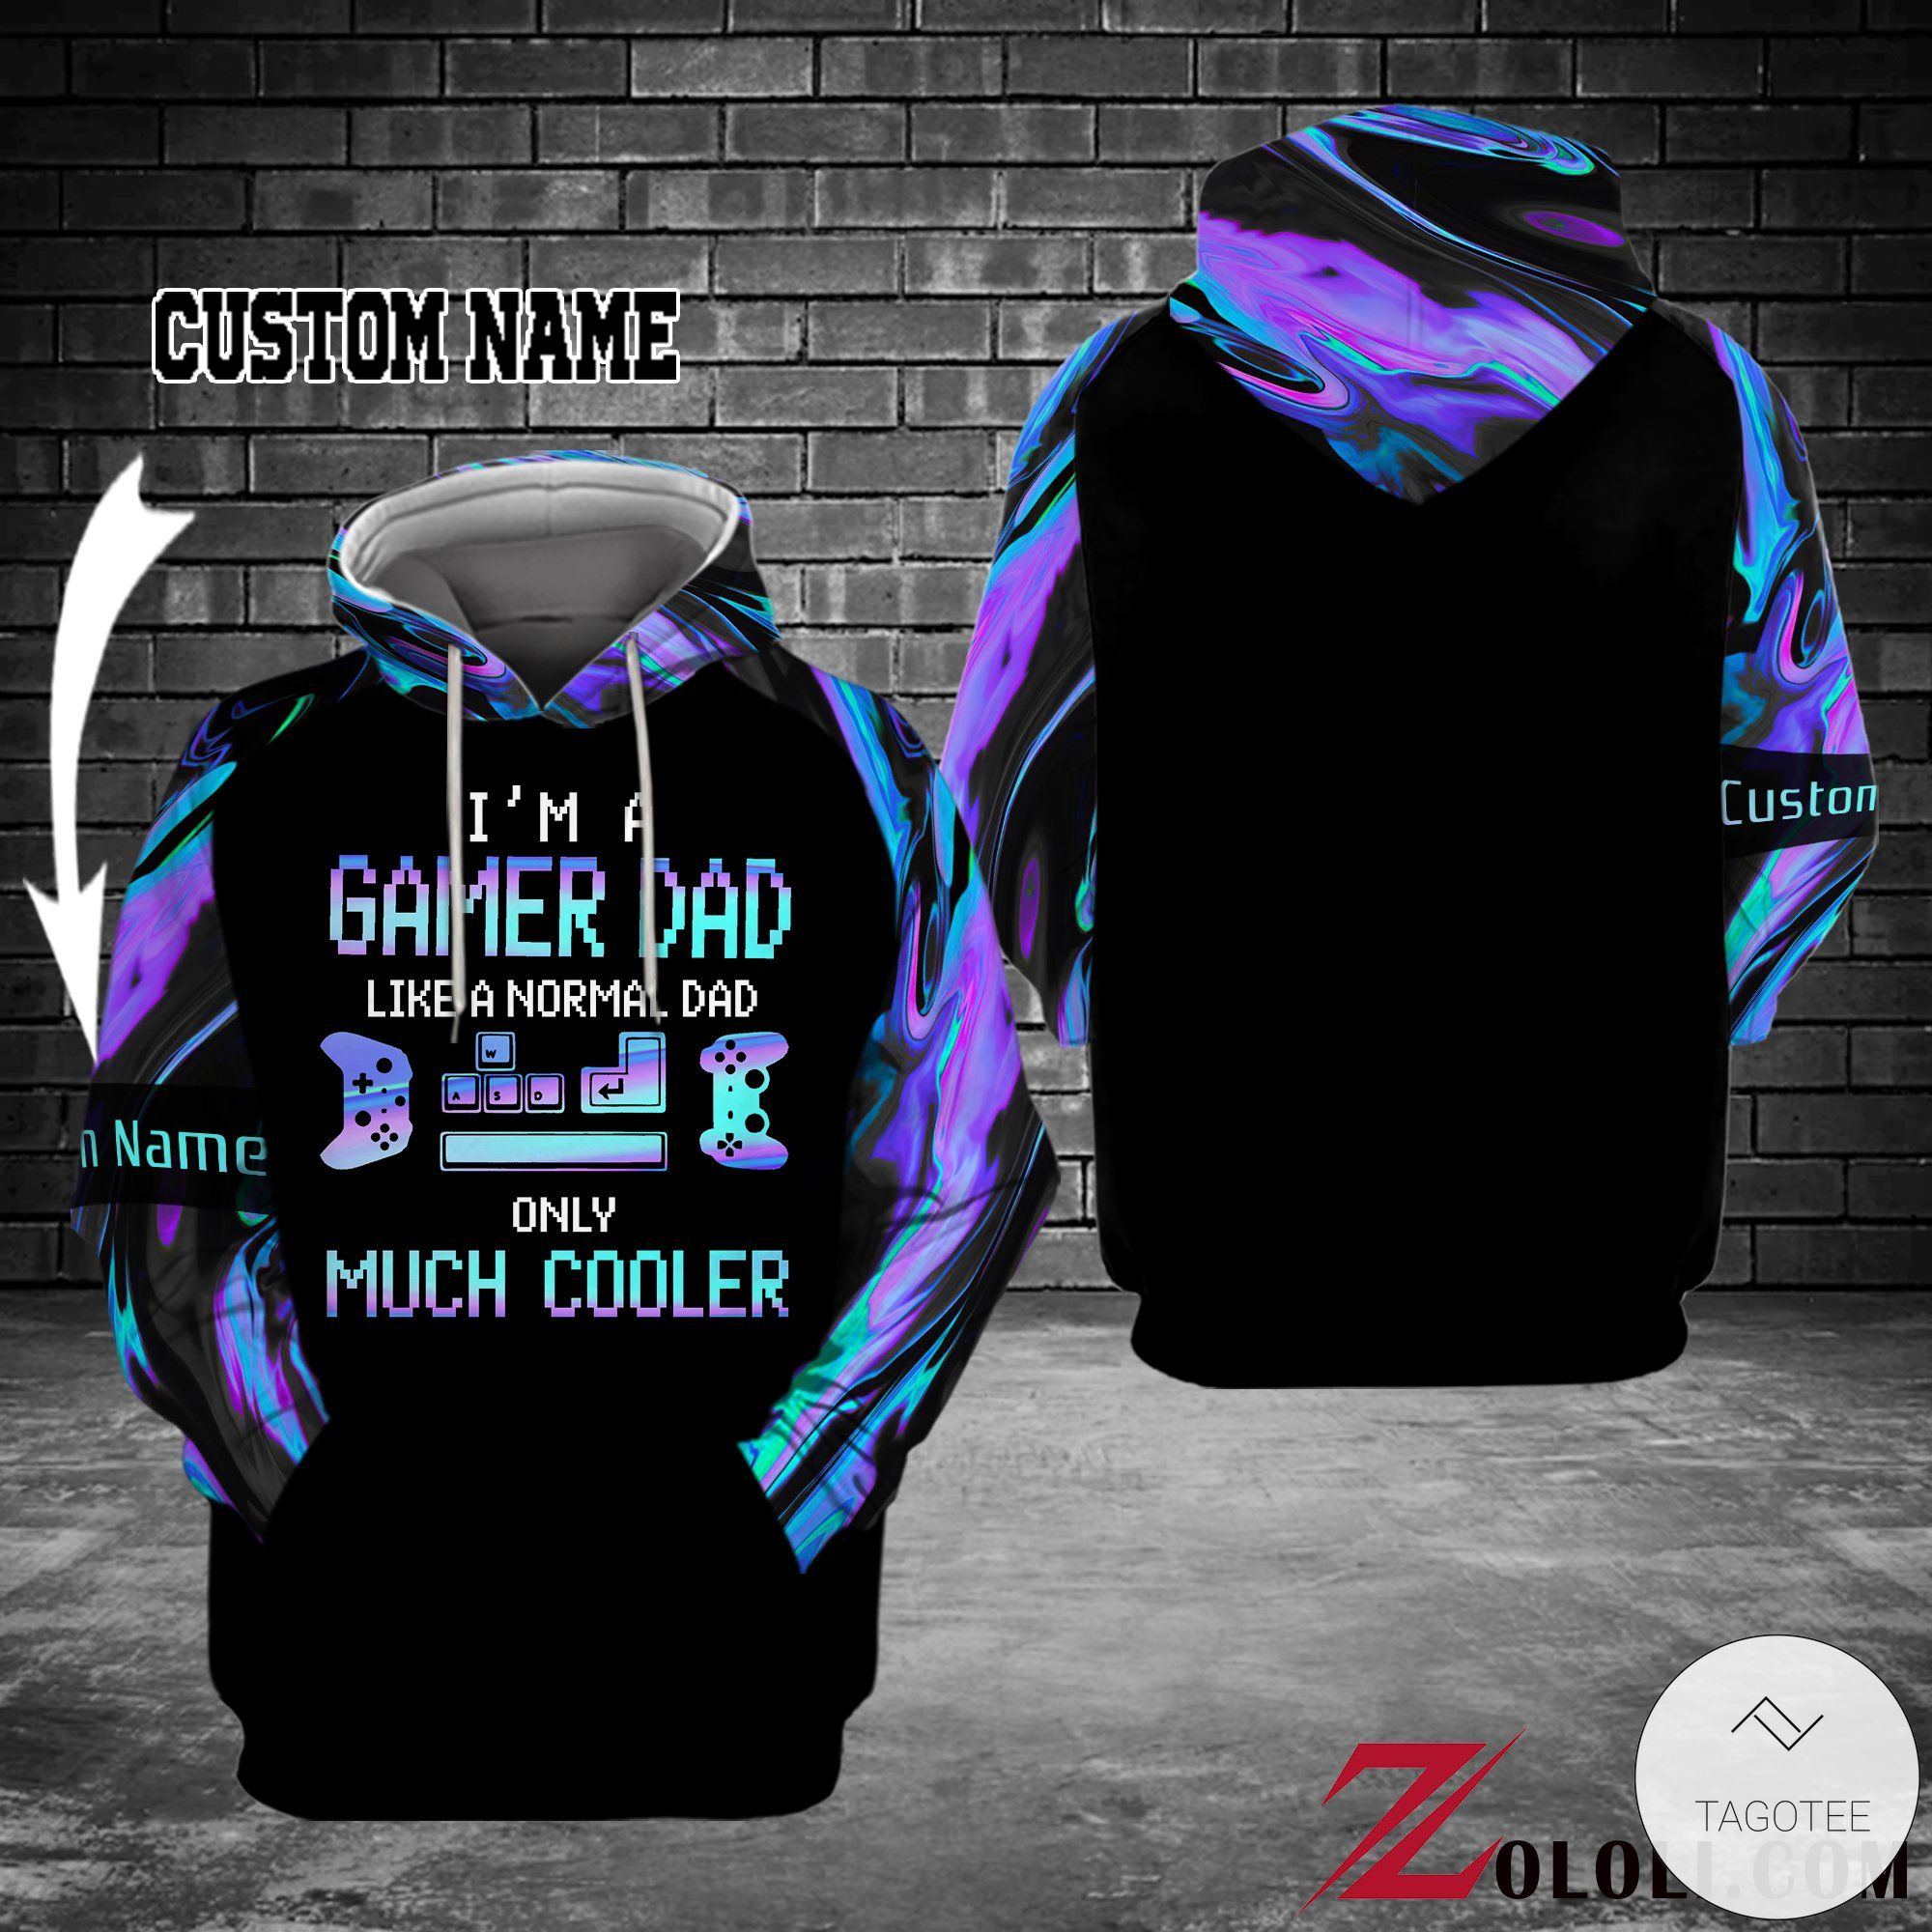 Personalized I'm a gamer dad Like a normal dad only much cooler 3D hoodies